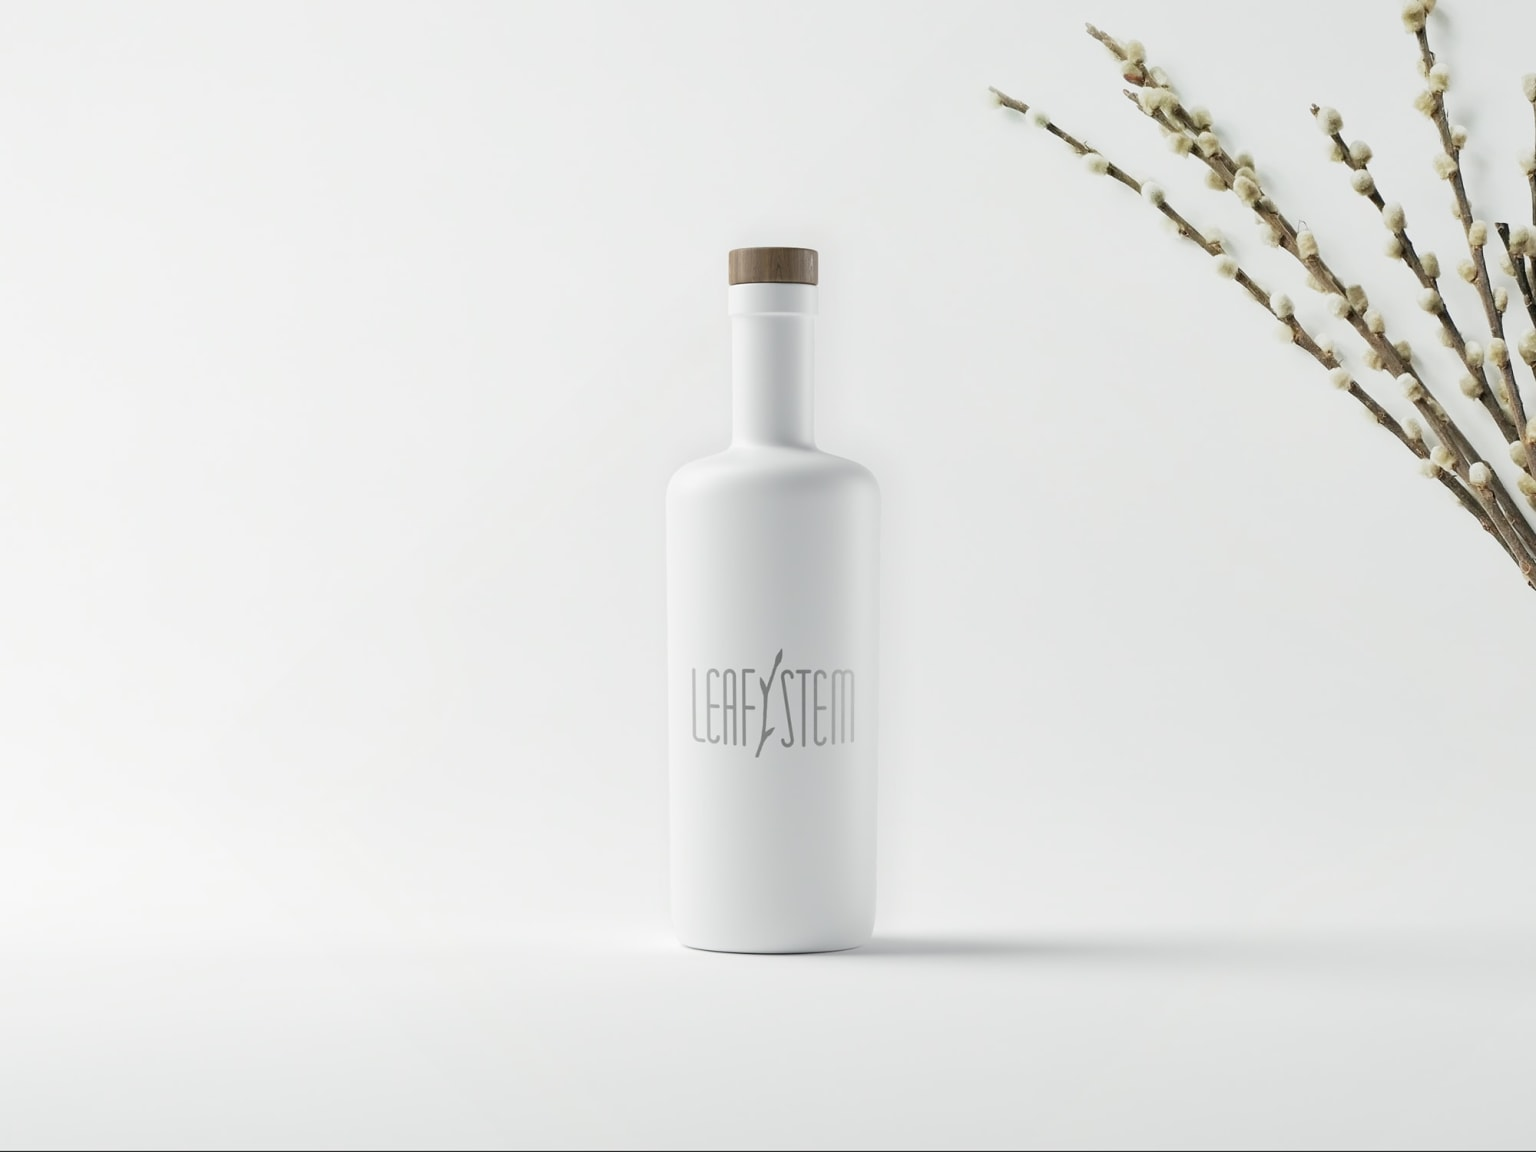 Beauty Brand & Packaging Concepts